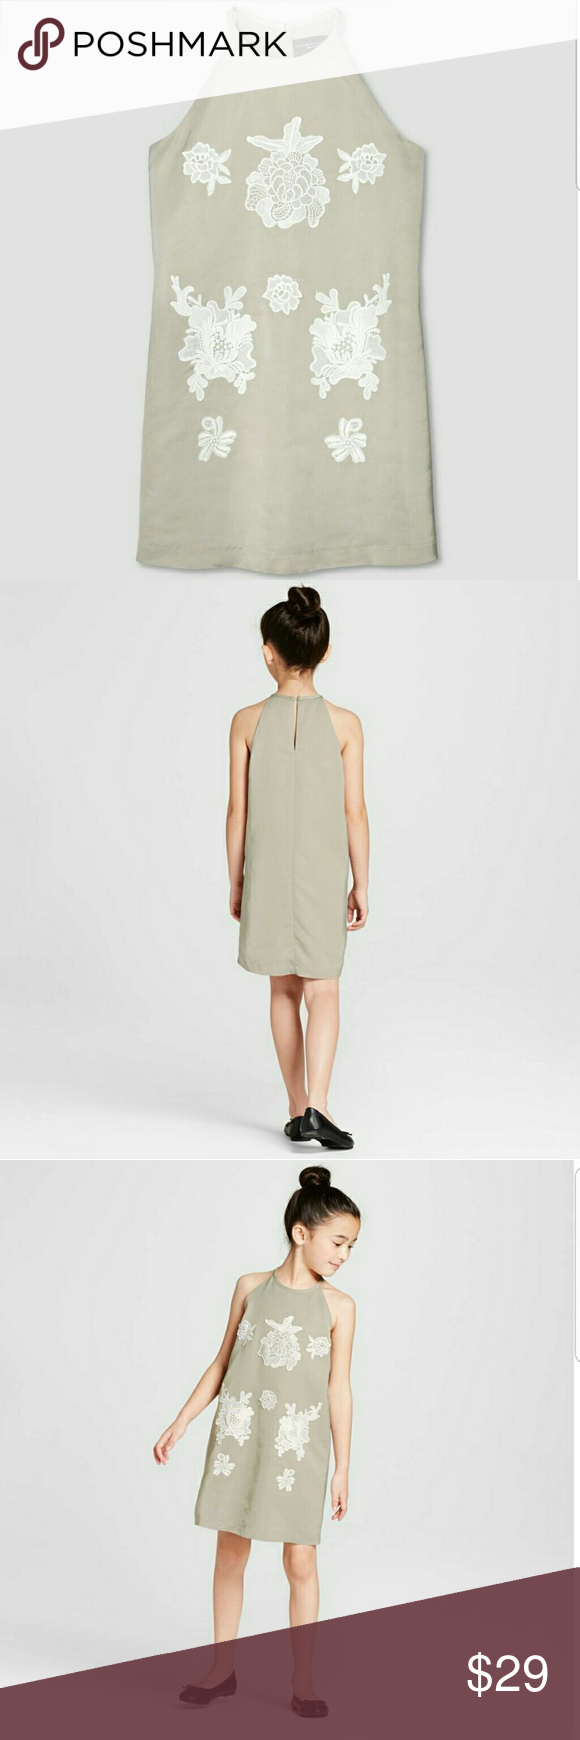 Victoria Beckham For Target Sage Green Dress Nwt This Is A Girls Size Xl 14 16 Based On The Size Chart This Can Target Dresses Sage Green Dress Timeless Dress [ 1740 x 580 Pixel ]